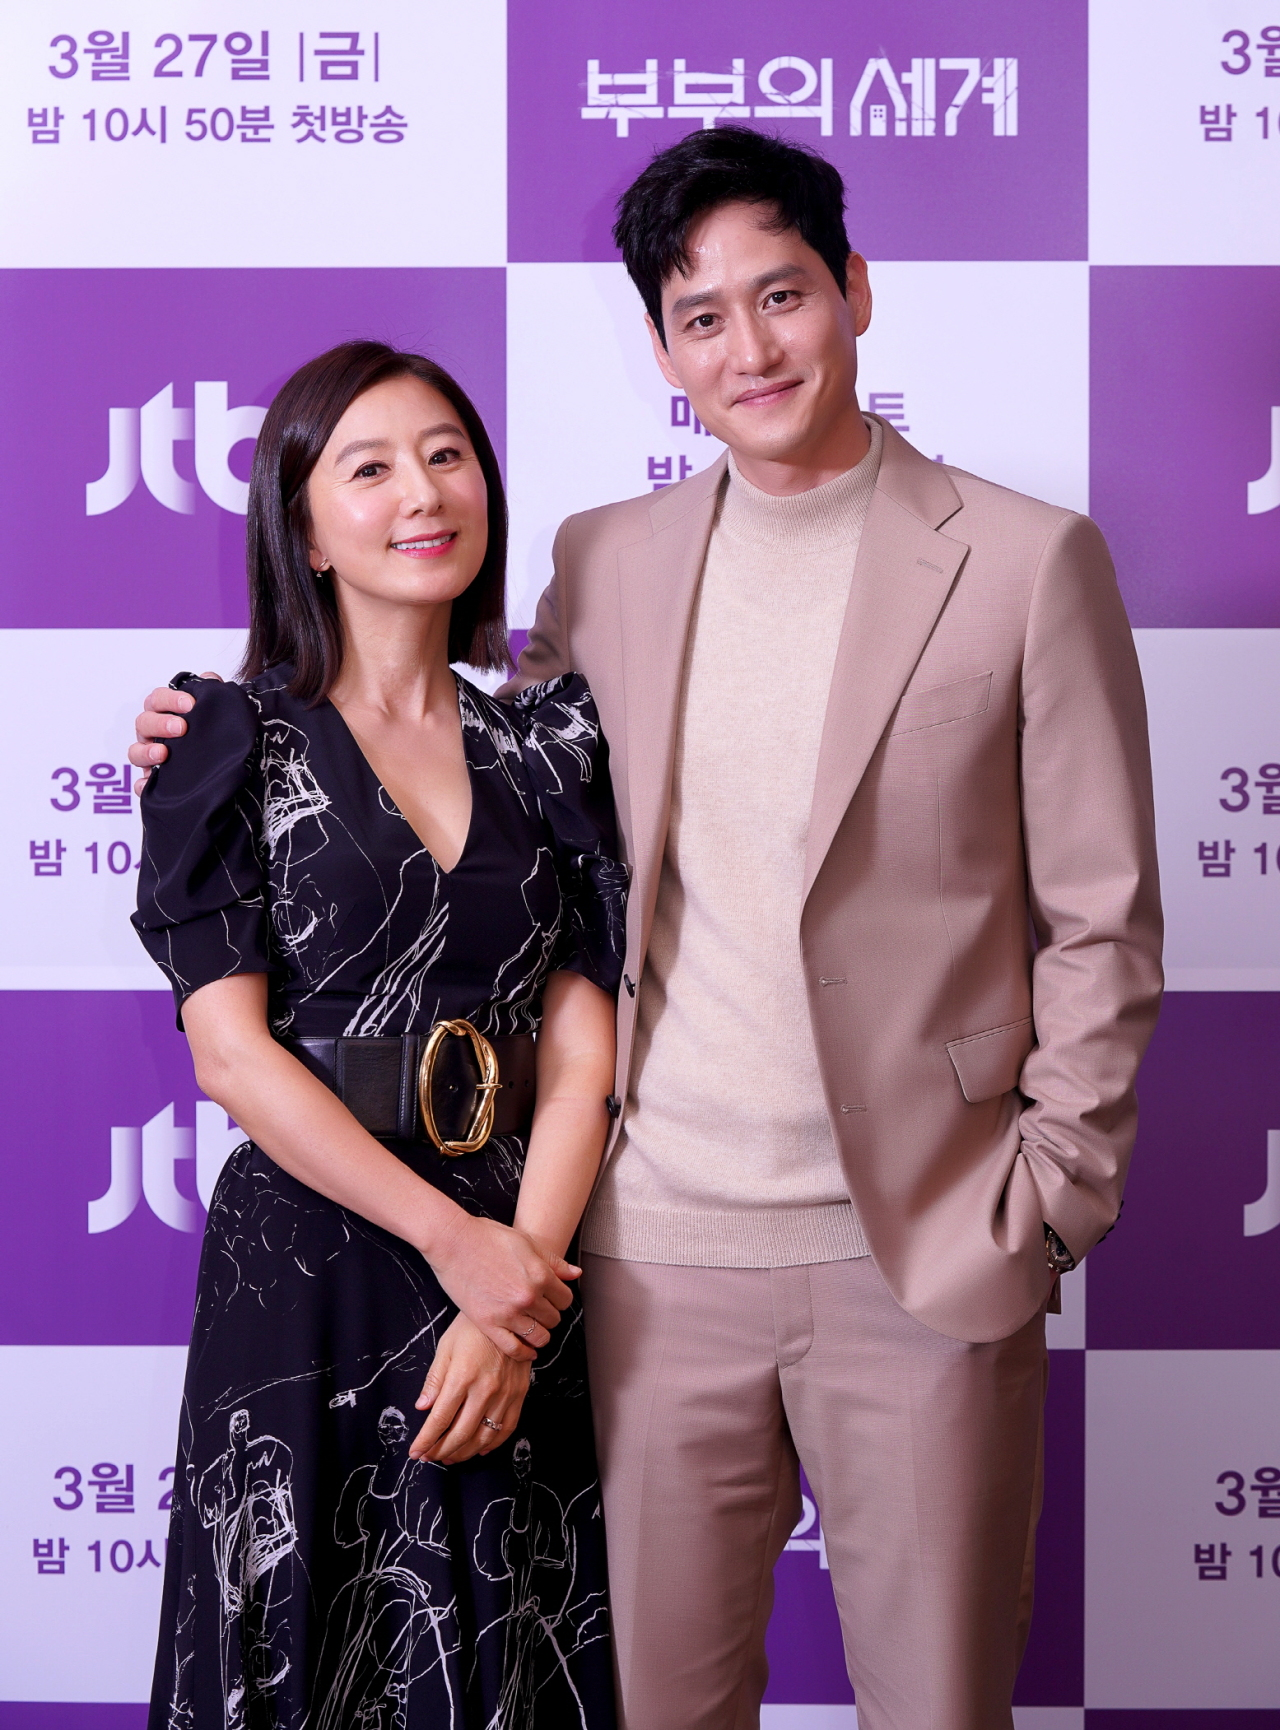 Kim Hee-ae and Park Hae-joon pose for picture before the press conference on Thursday. (JTBC)